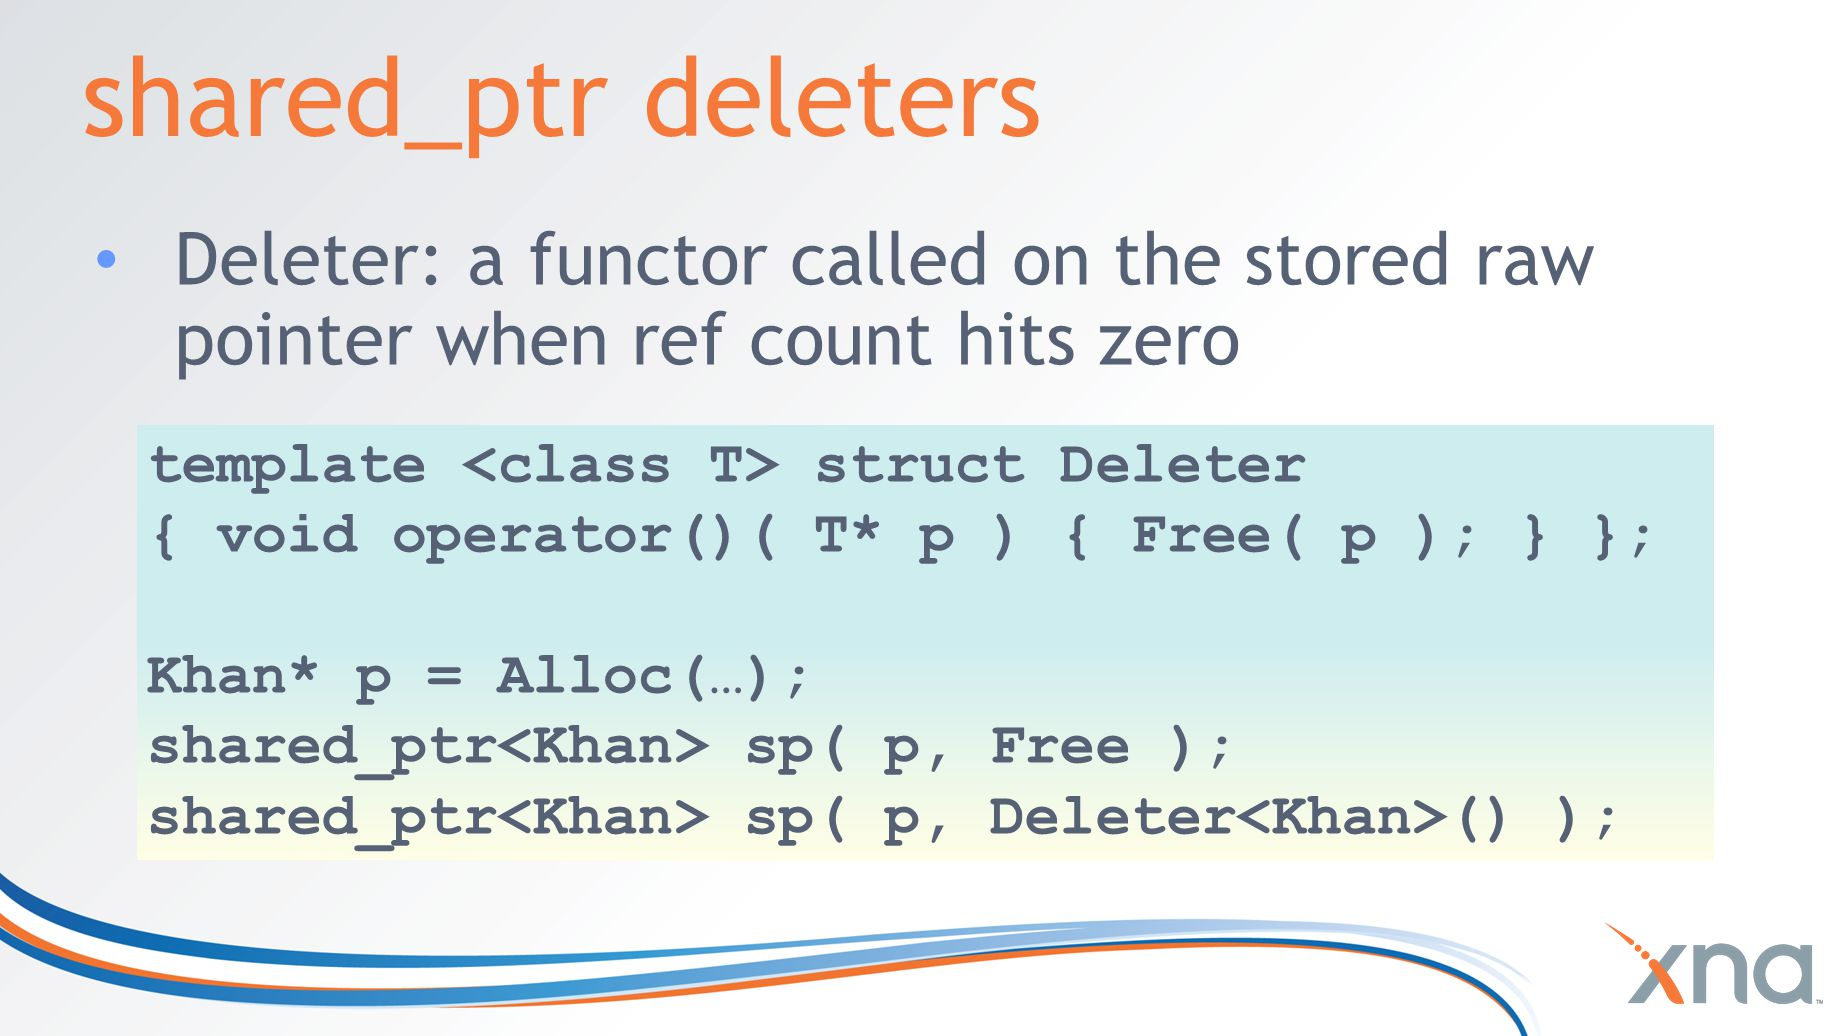 shared_ptr deleters Deleter: a functor called on the stored raw pointer when ref count hits zero template struct Deleter { void operator()( T* p ) { Free( p ); } }; Khan* p = Alloc(…); shared_ptr sp( p, Free ); shared_ptr sp( p, Deleter () );